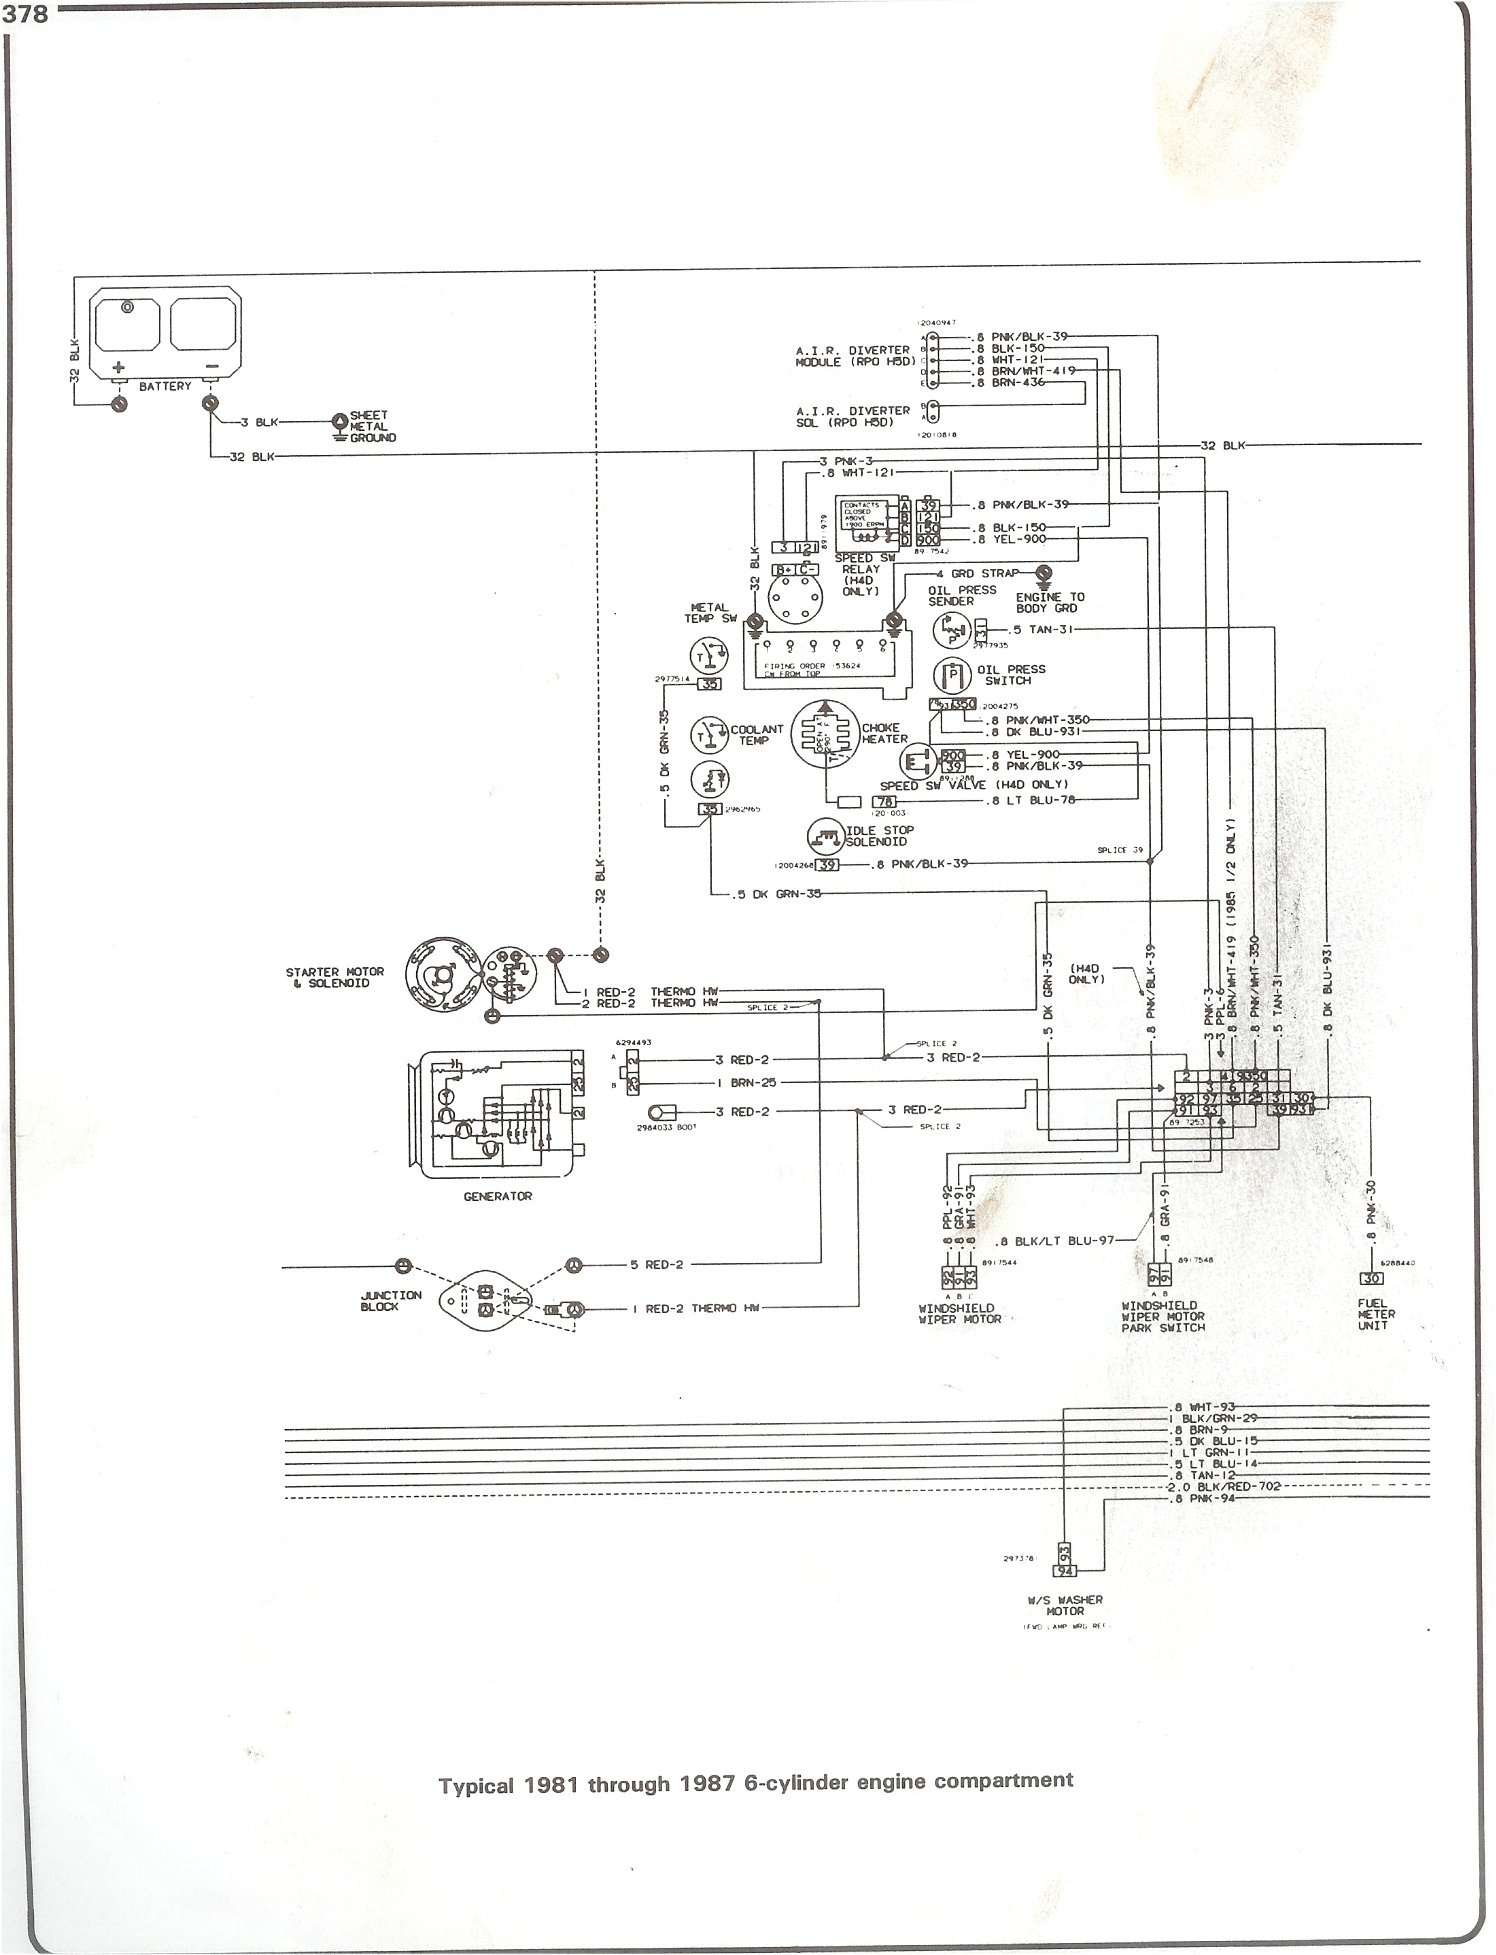 81 87_I6_engine complete 73 87 wiring diagrams 2008 Chevy Silverado Wiring Diagram at bayanpartner.co